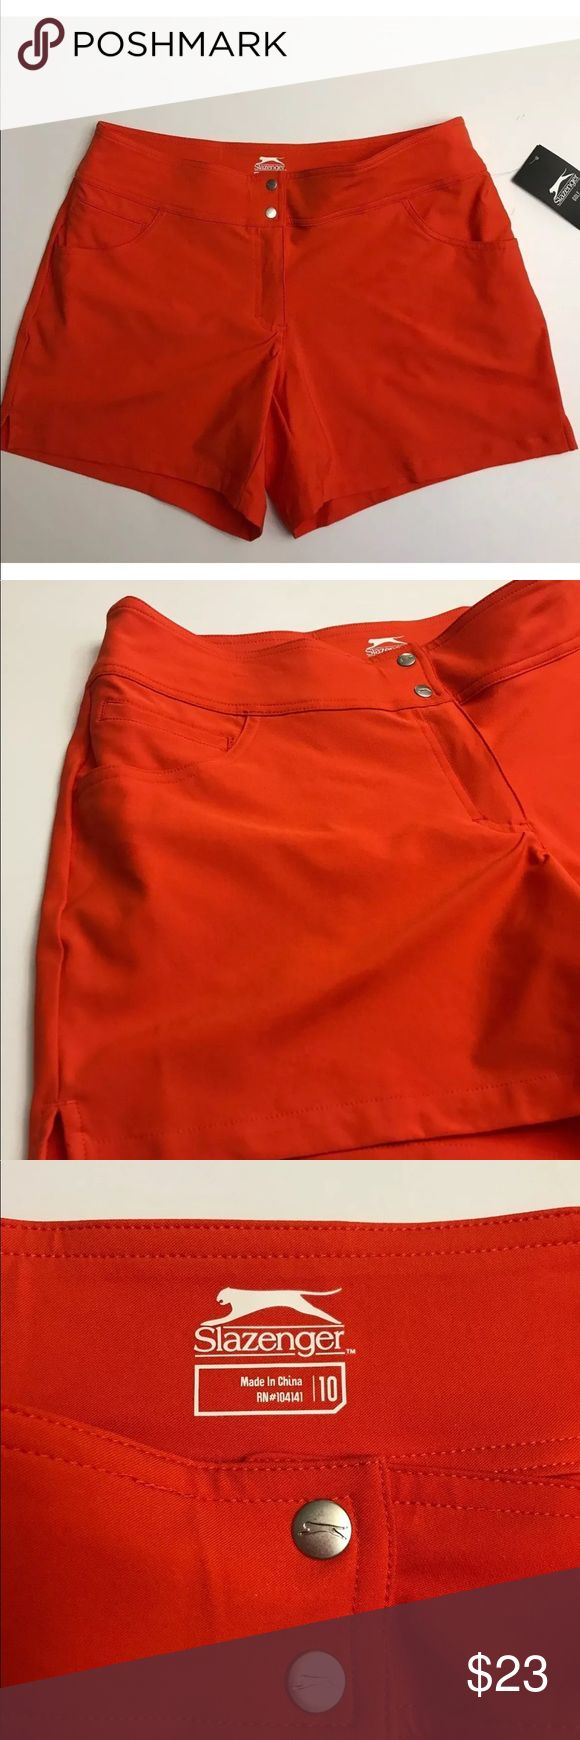 NEW Slazenger golf women's shorts running size 10 Slazenger Gold shorts Size 10 Brand new with tags! Zero flaws  18 inches waist un-stretched  See all photos and ask questions if needed 😁😁😁 Slazenger Shorts